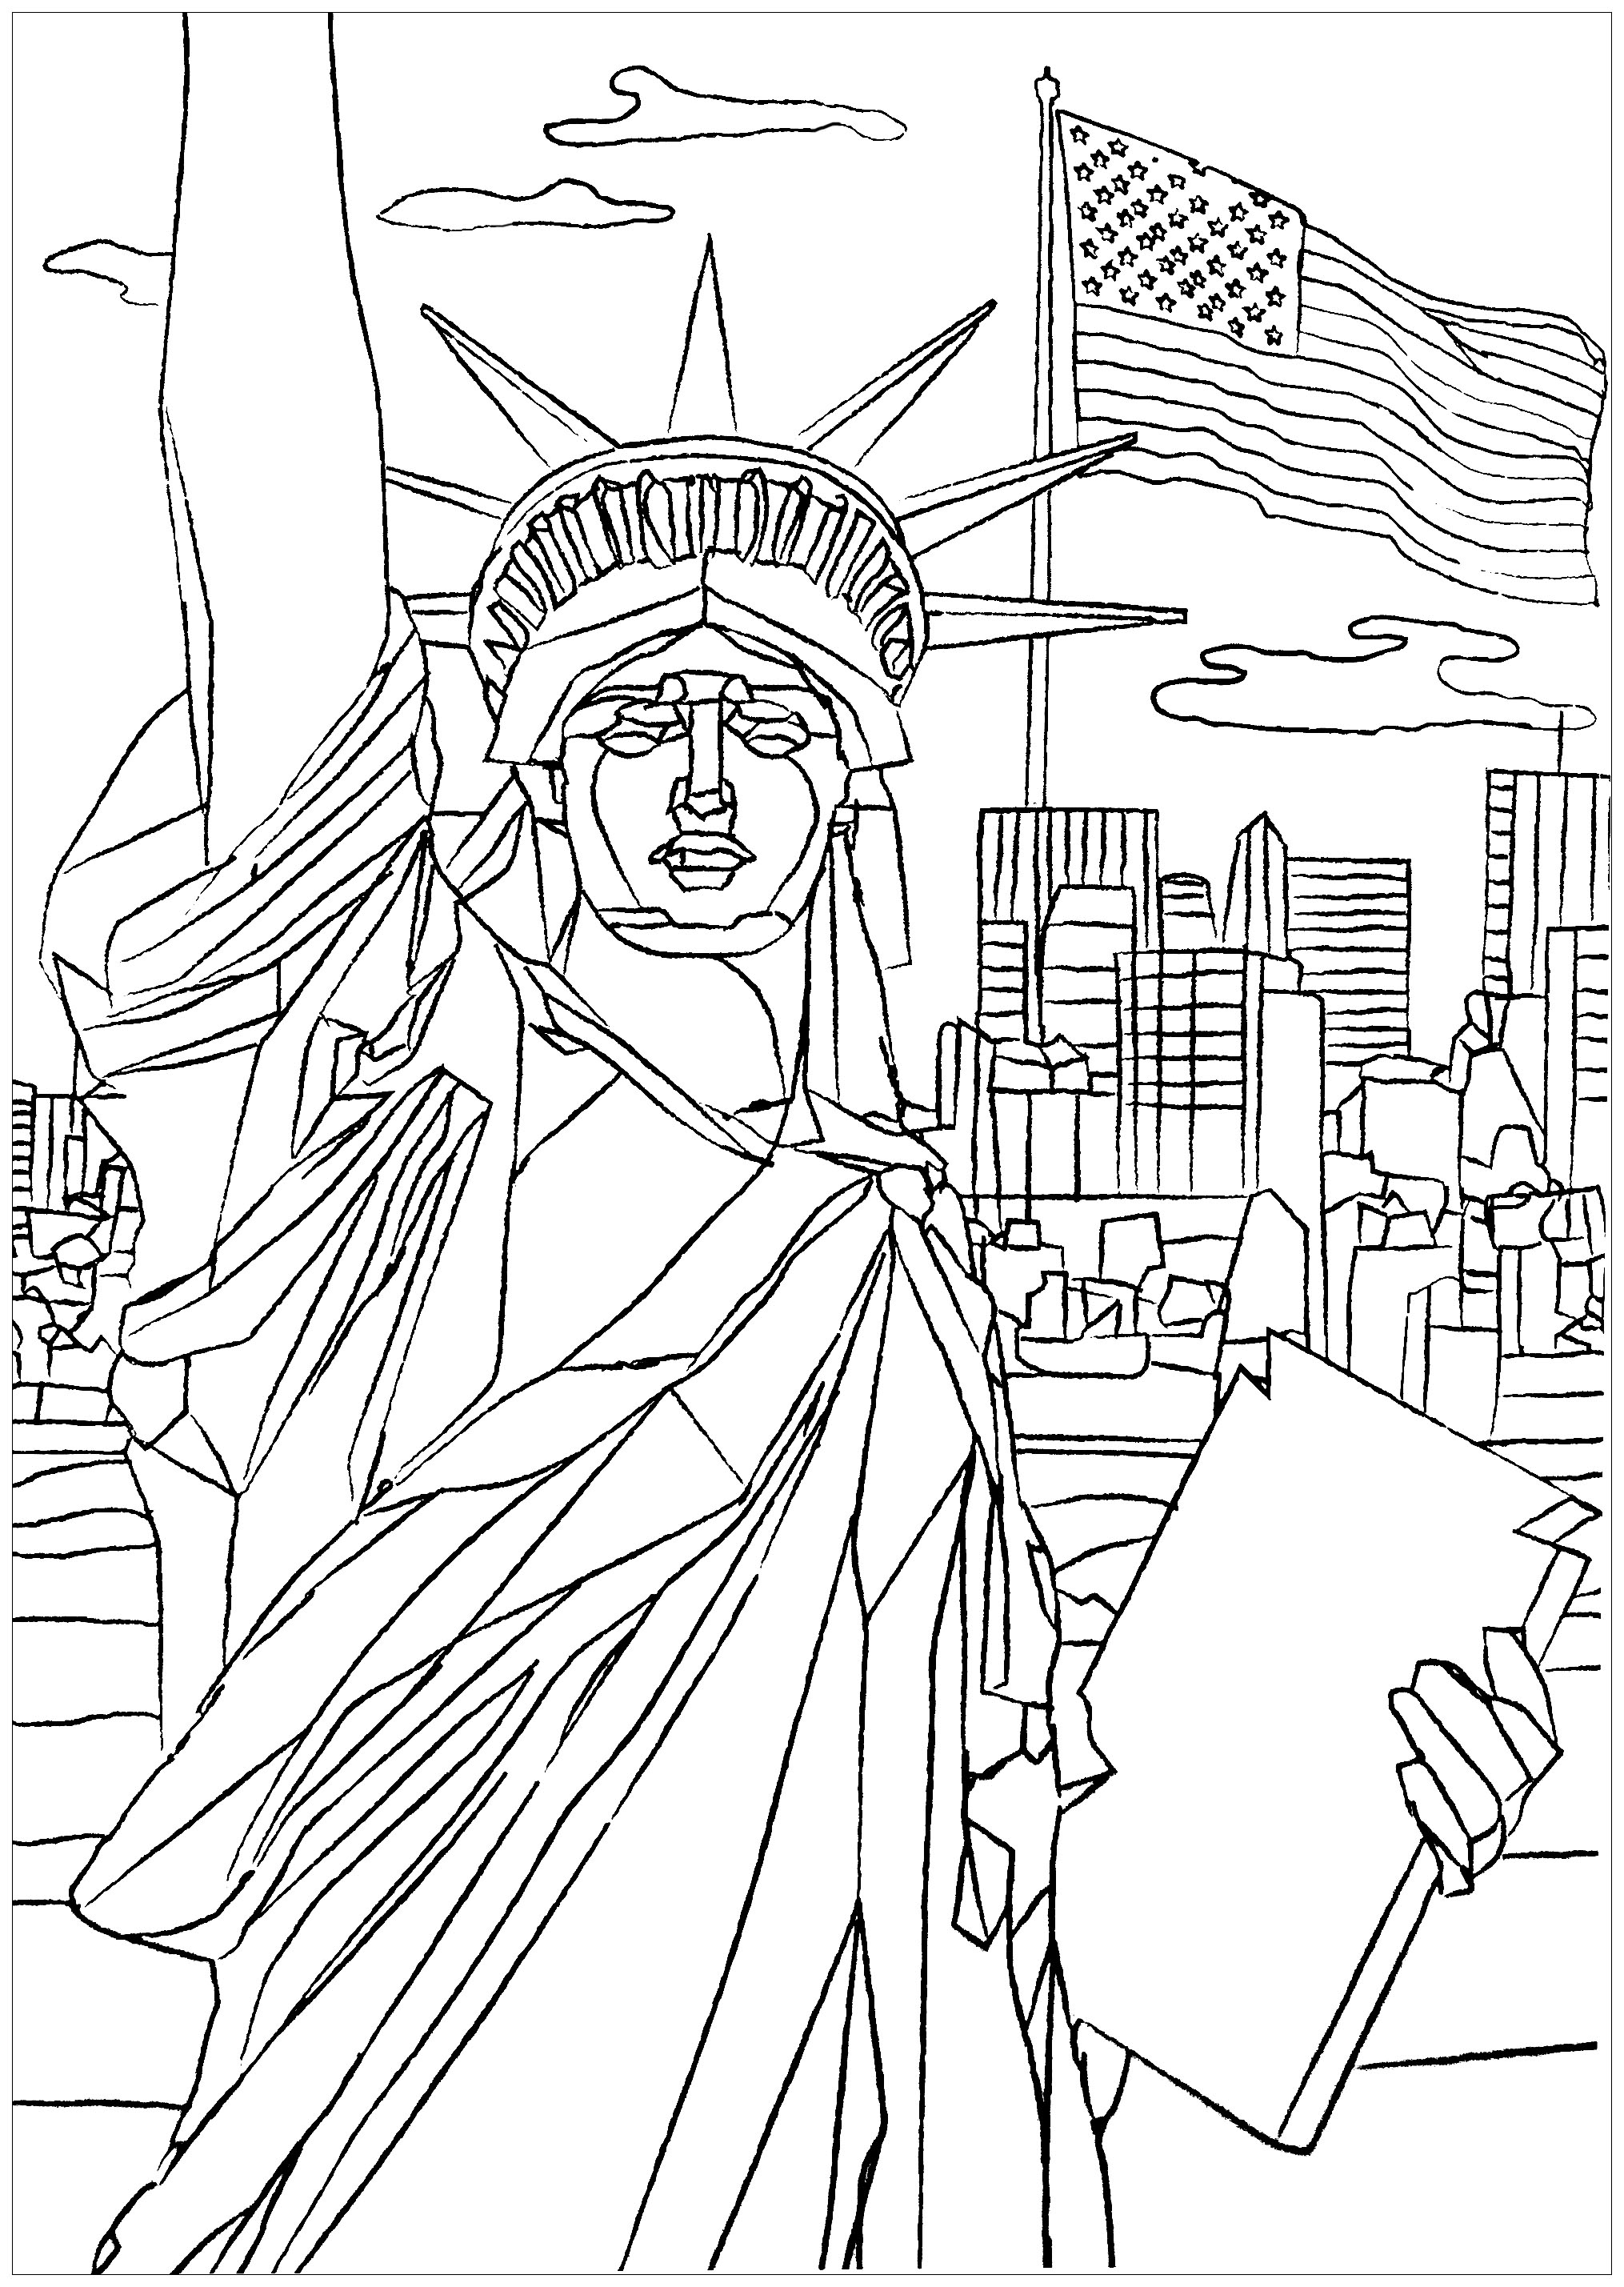 Statue Of Liberty In New York New York Adult Coloring Pages